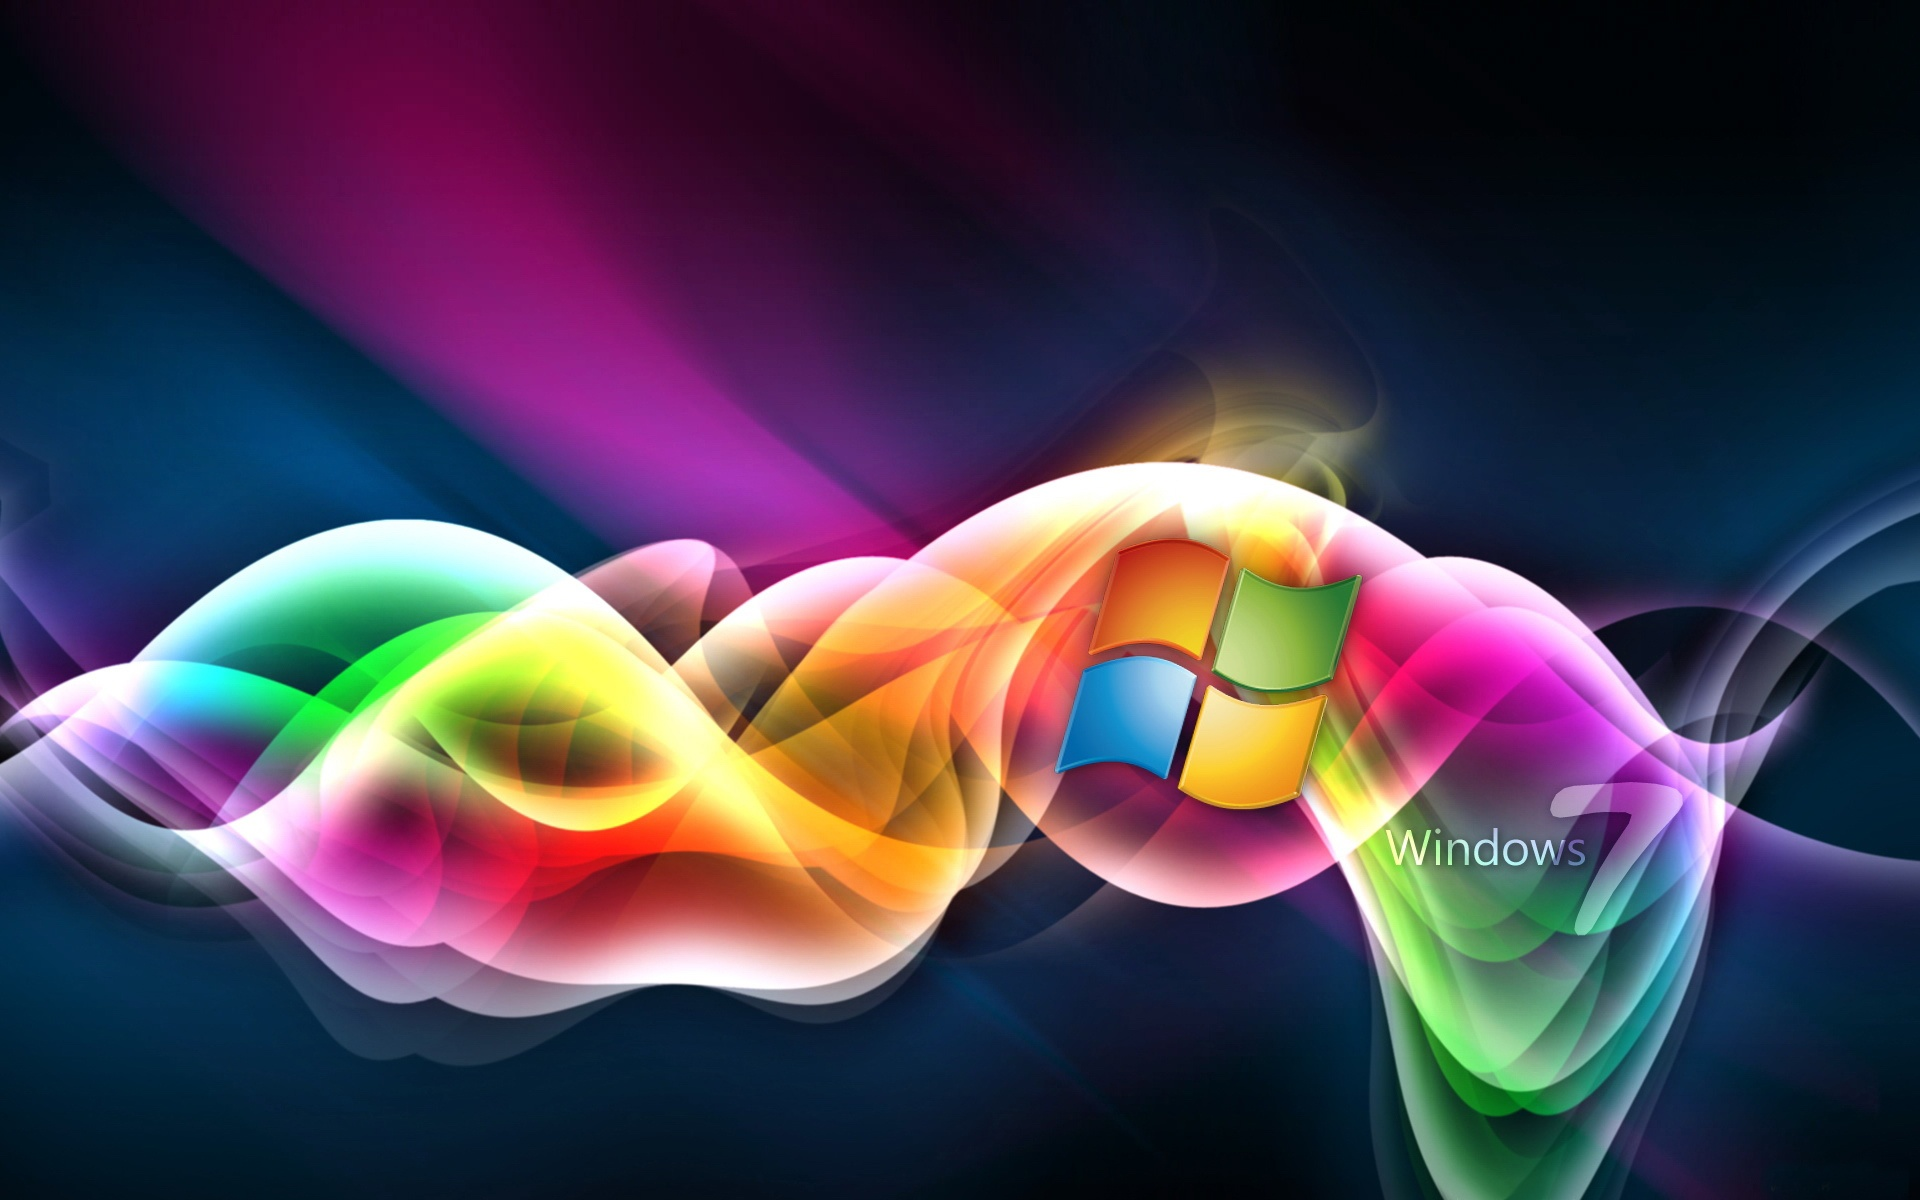 3d live wallpaper download for windows 7